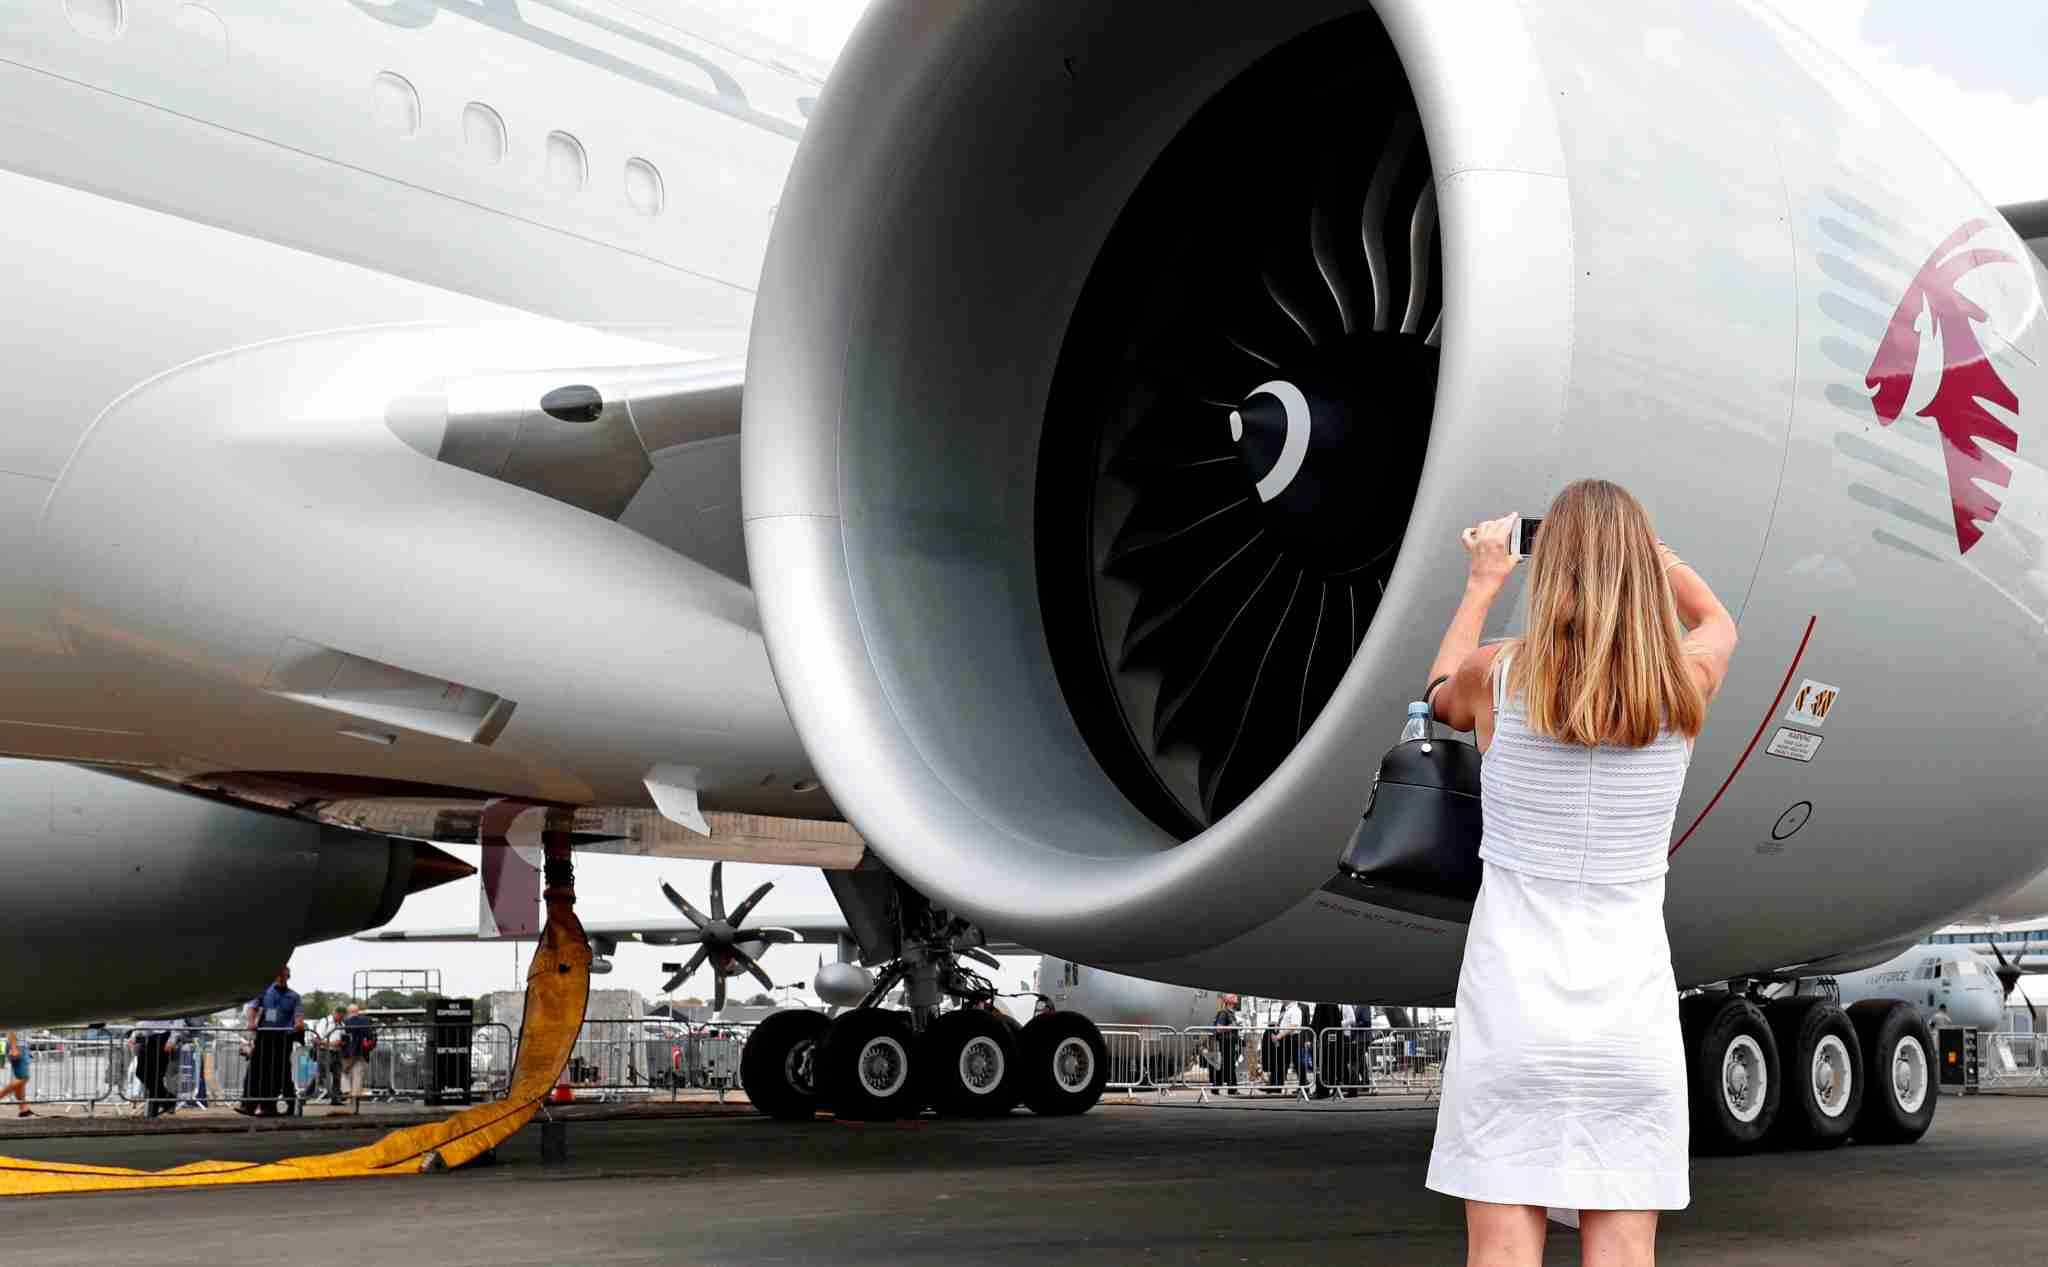 A visitor photographs the General Electric GE90 engine of a Qatar Airways operated Boeing 777-3DZ passenger aircraft Farnborough Airshow, south west of London, on July 19, 2018. (Photo by Adrian DENNIS / AFP) (Photo credit should read ADRIAN DENNIS/AFP/Getty Images)